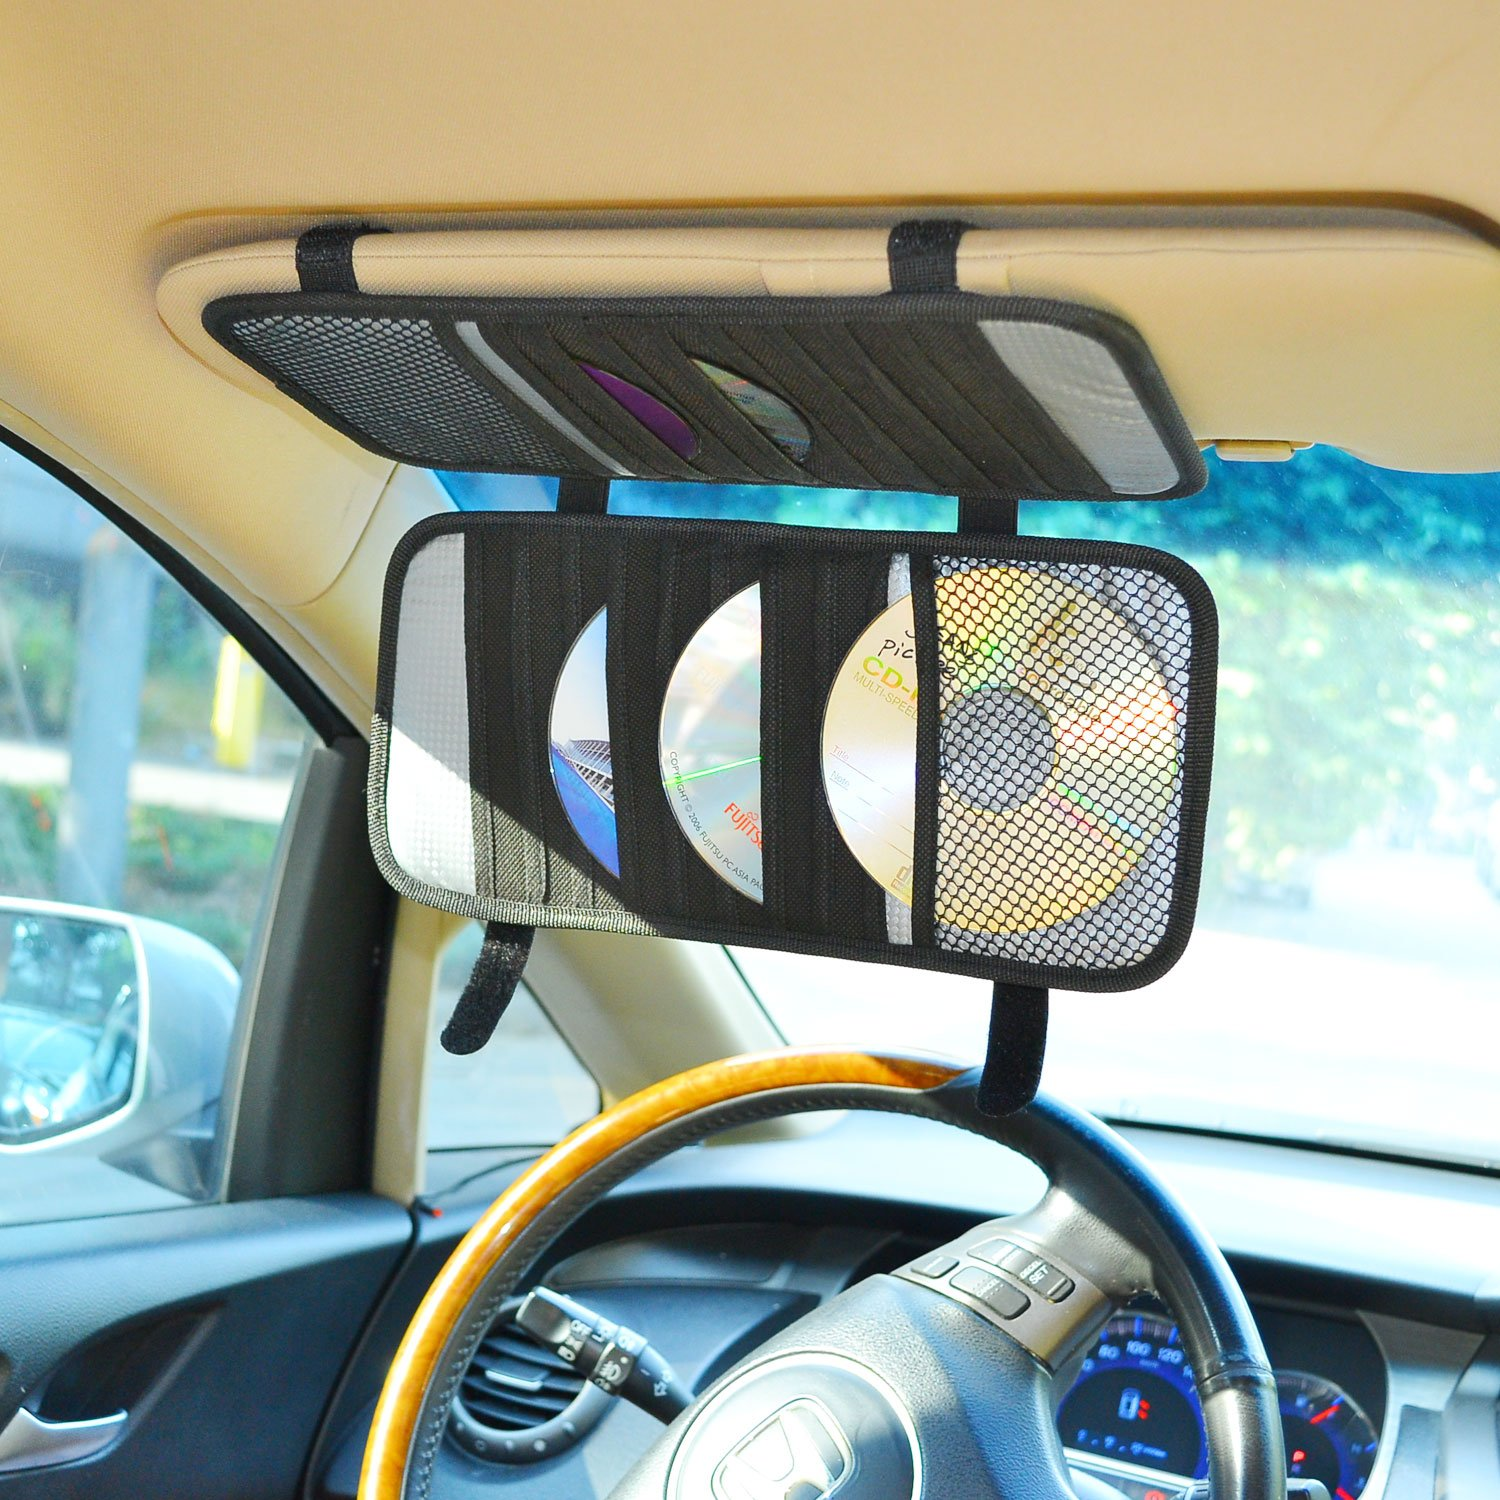 TFY Car Visor Organizer. Triple-layer, 30 CD/DVD Disk Storage Holder - Black by TFY